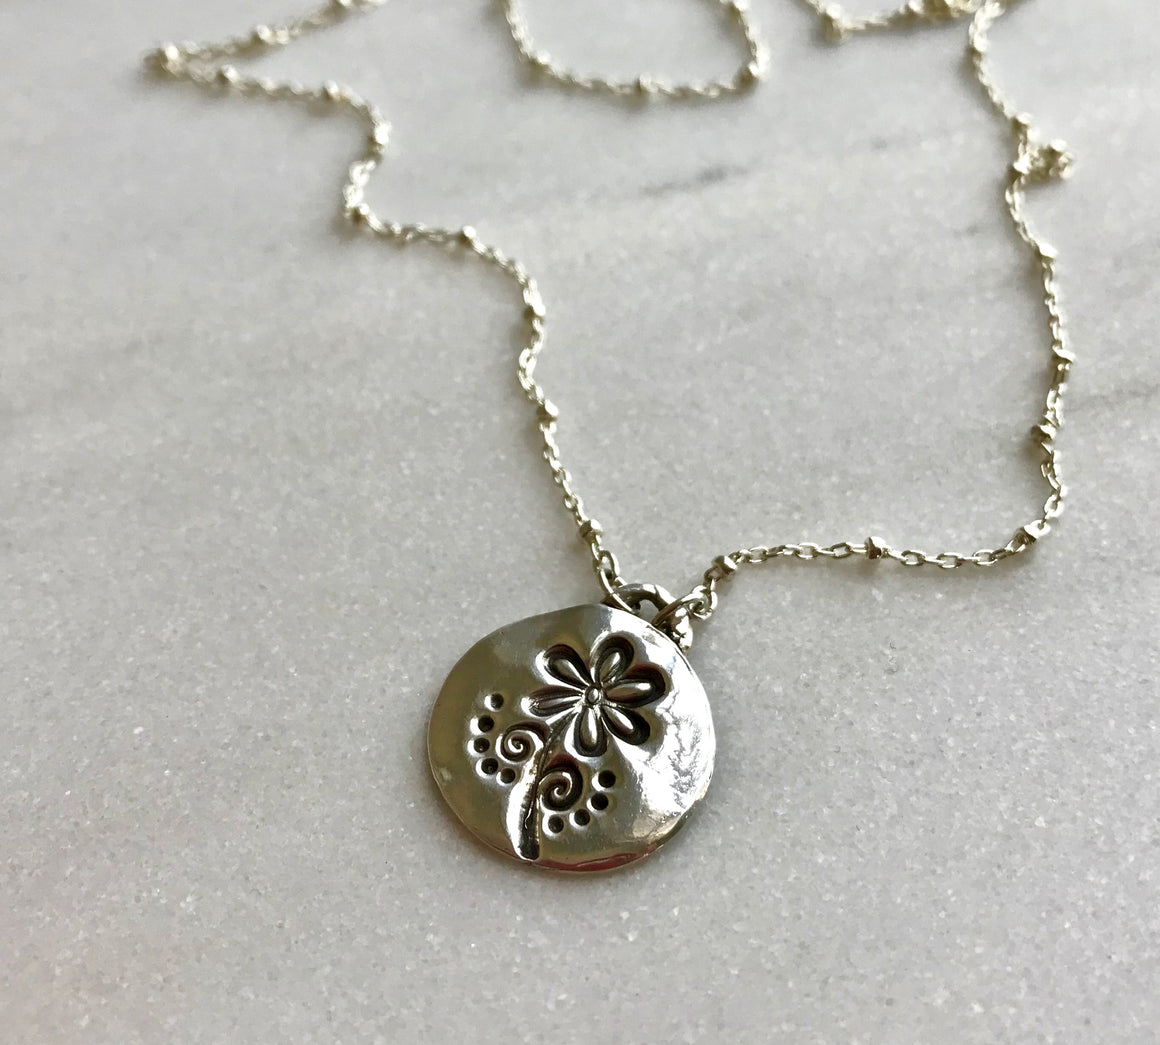 Circular Pendant Stamped with a Flower on Sterling Silver Satellite Chain